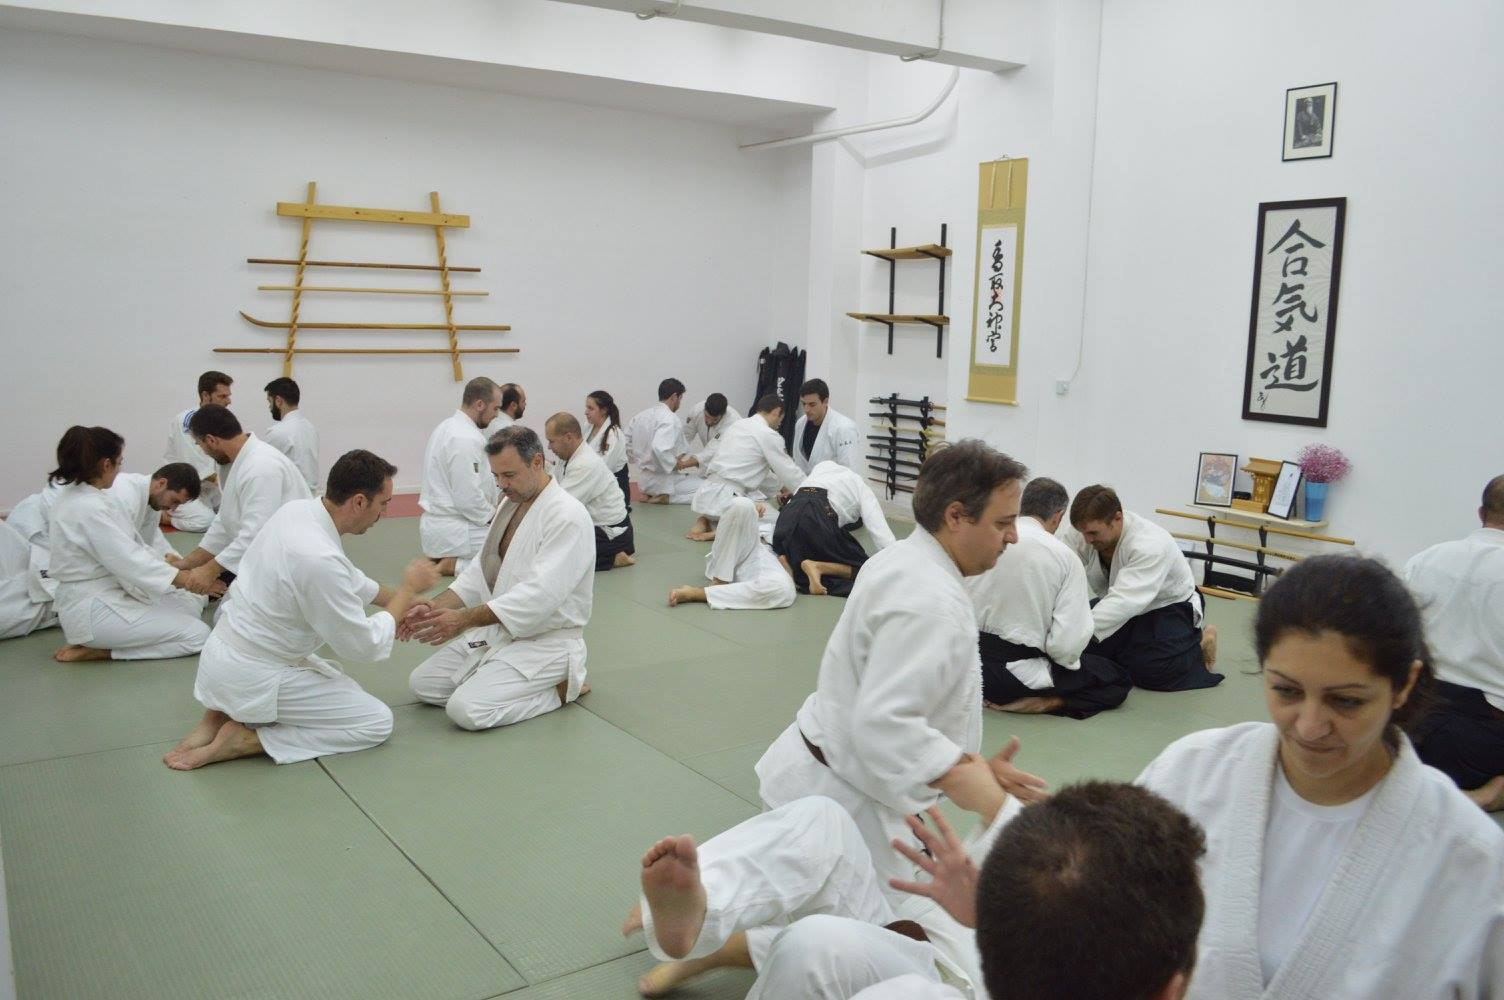 abc common aikido practice108